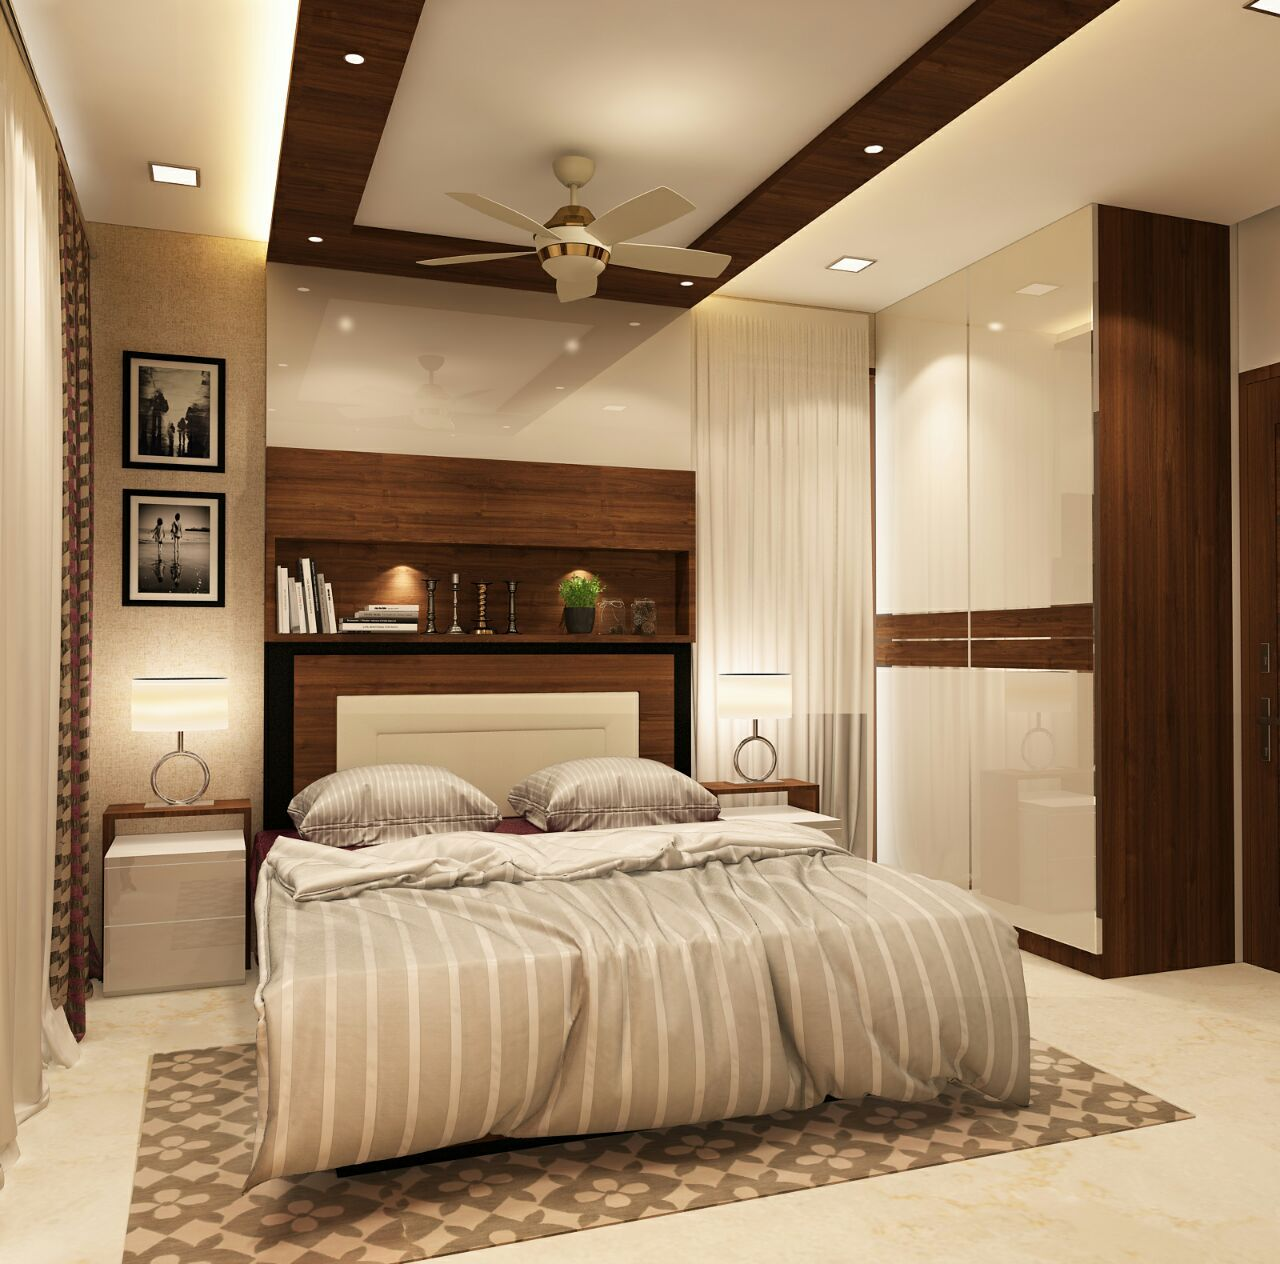 New Home Designs Latest Luxury Homes Interior Decoration: Master Bedrooms Guest Bedrooms Interior Design By Nagesh